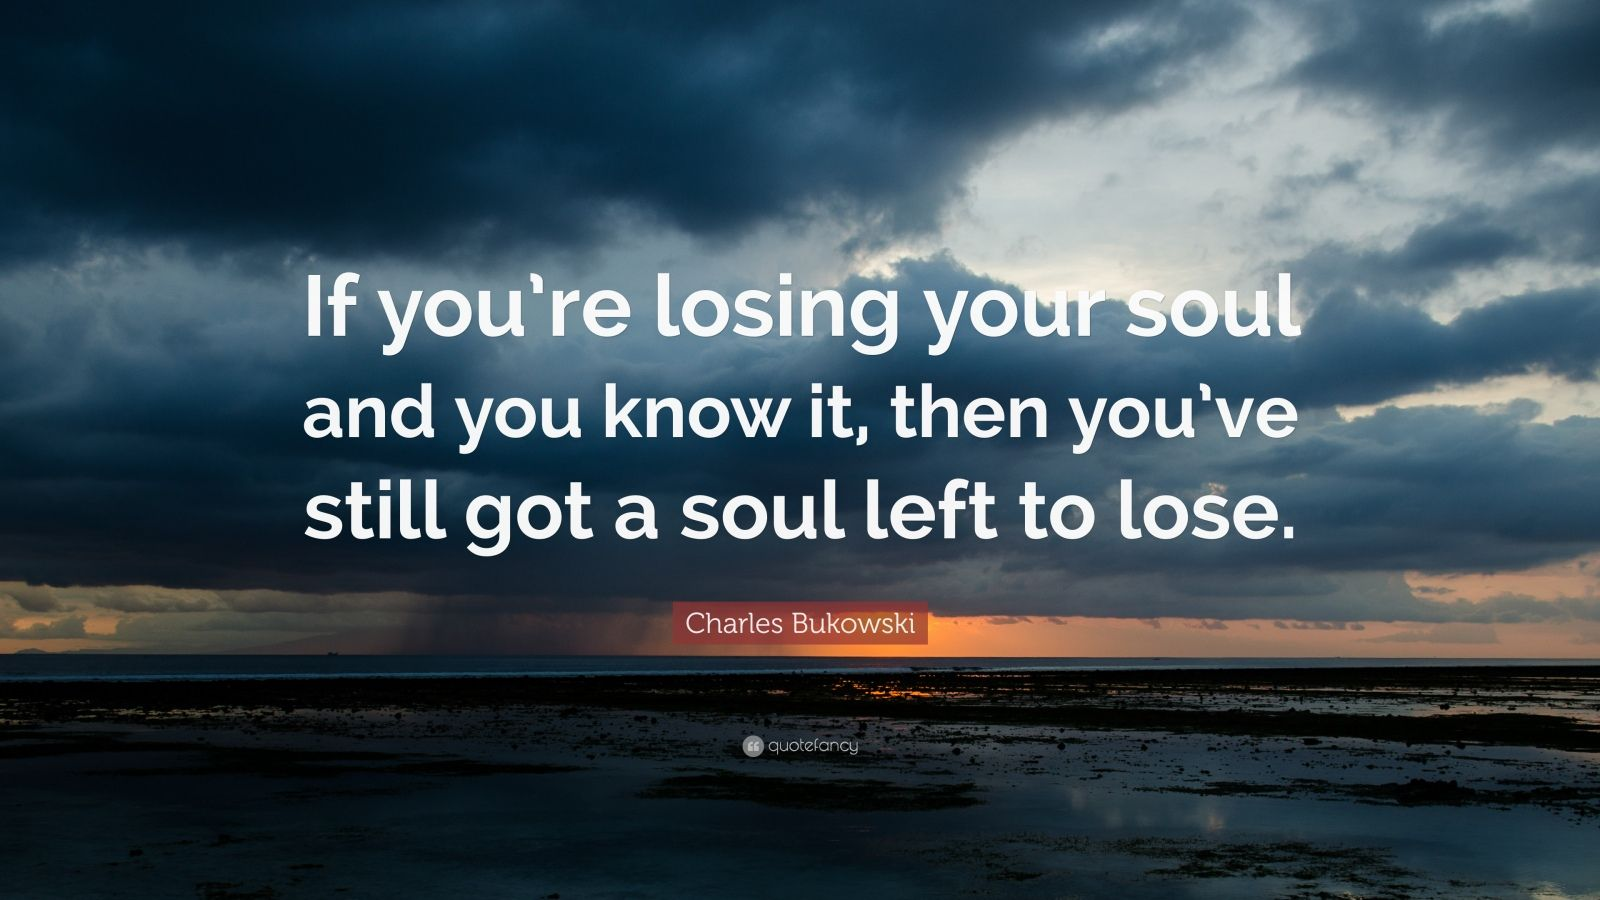 """Charles Bukowski Quote: """"If you're losing your soul and you know it, then you've still got a soul left to lose."""""""